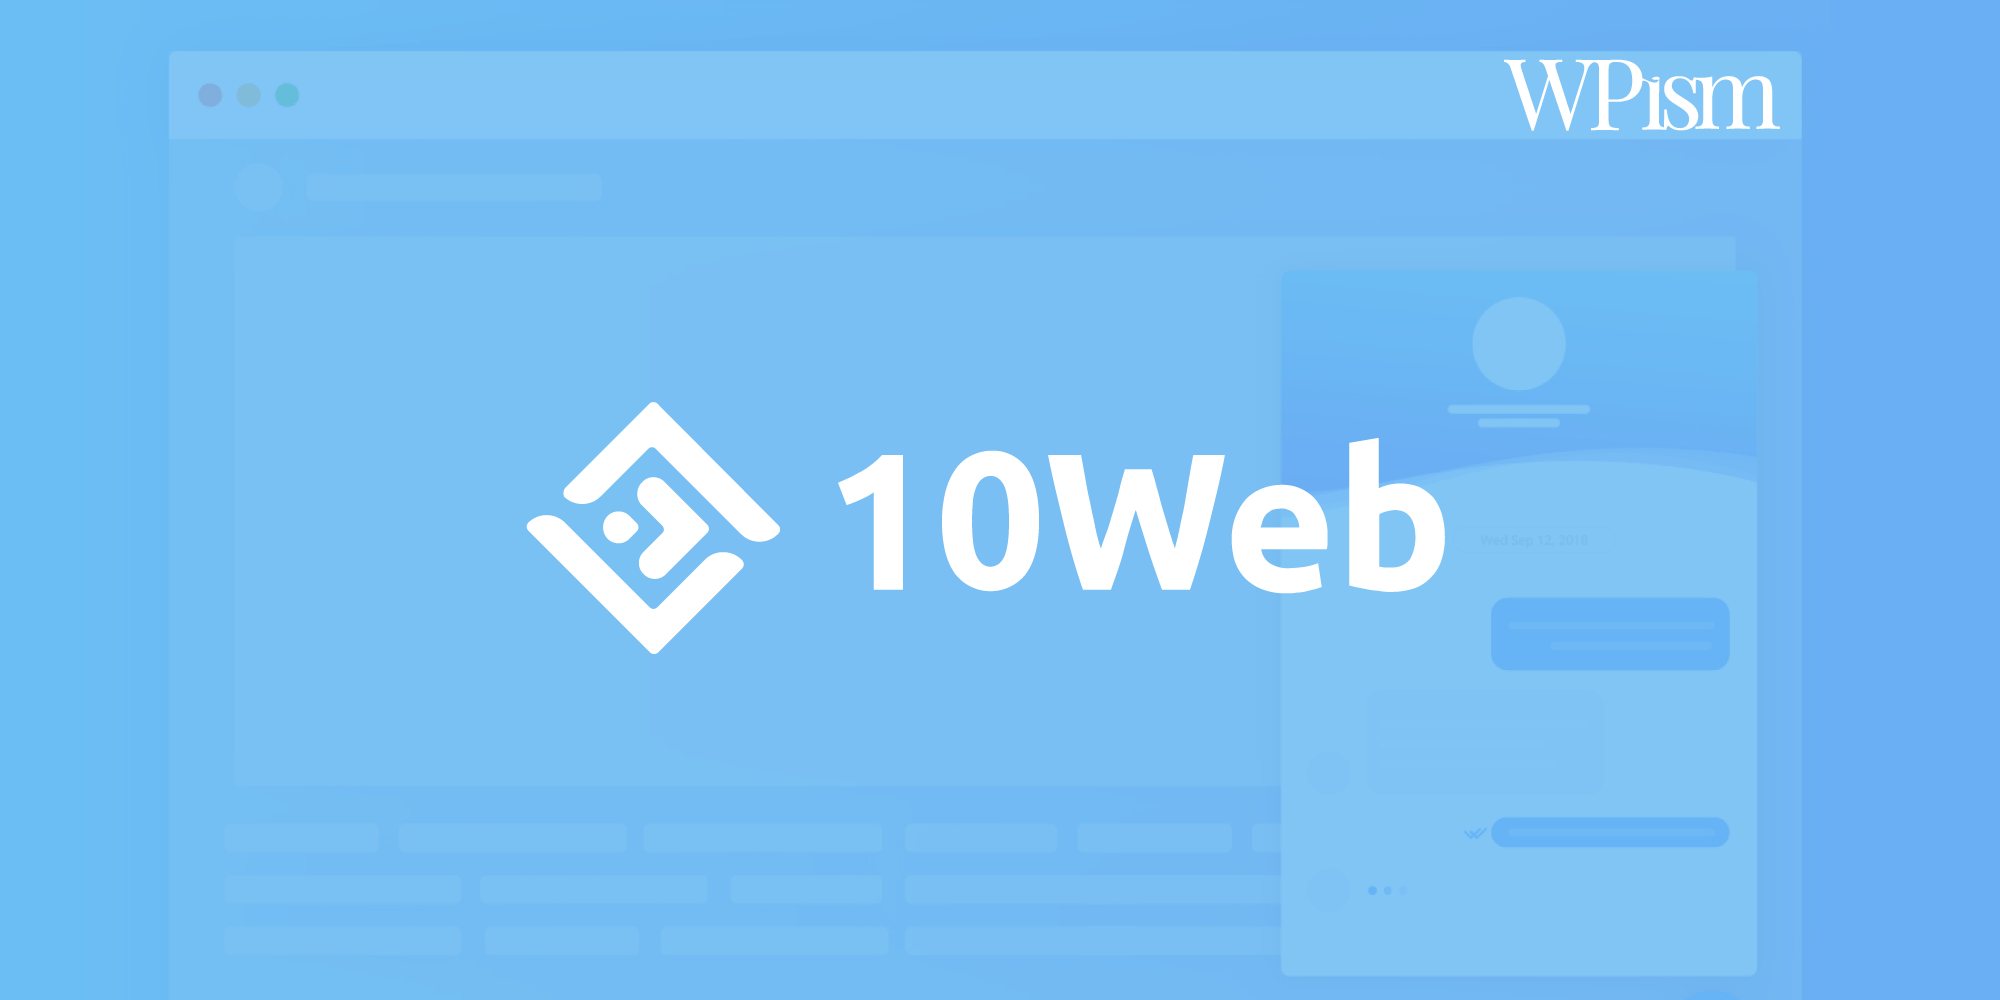 10Web Coupon Code WordPress WPism